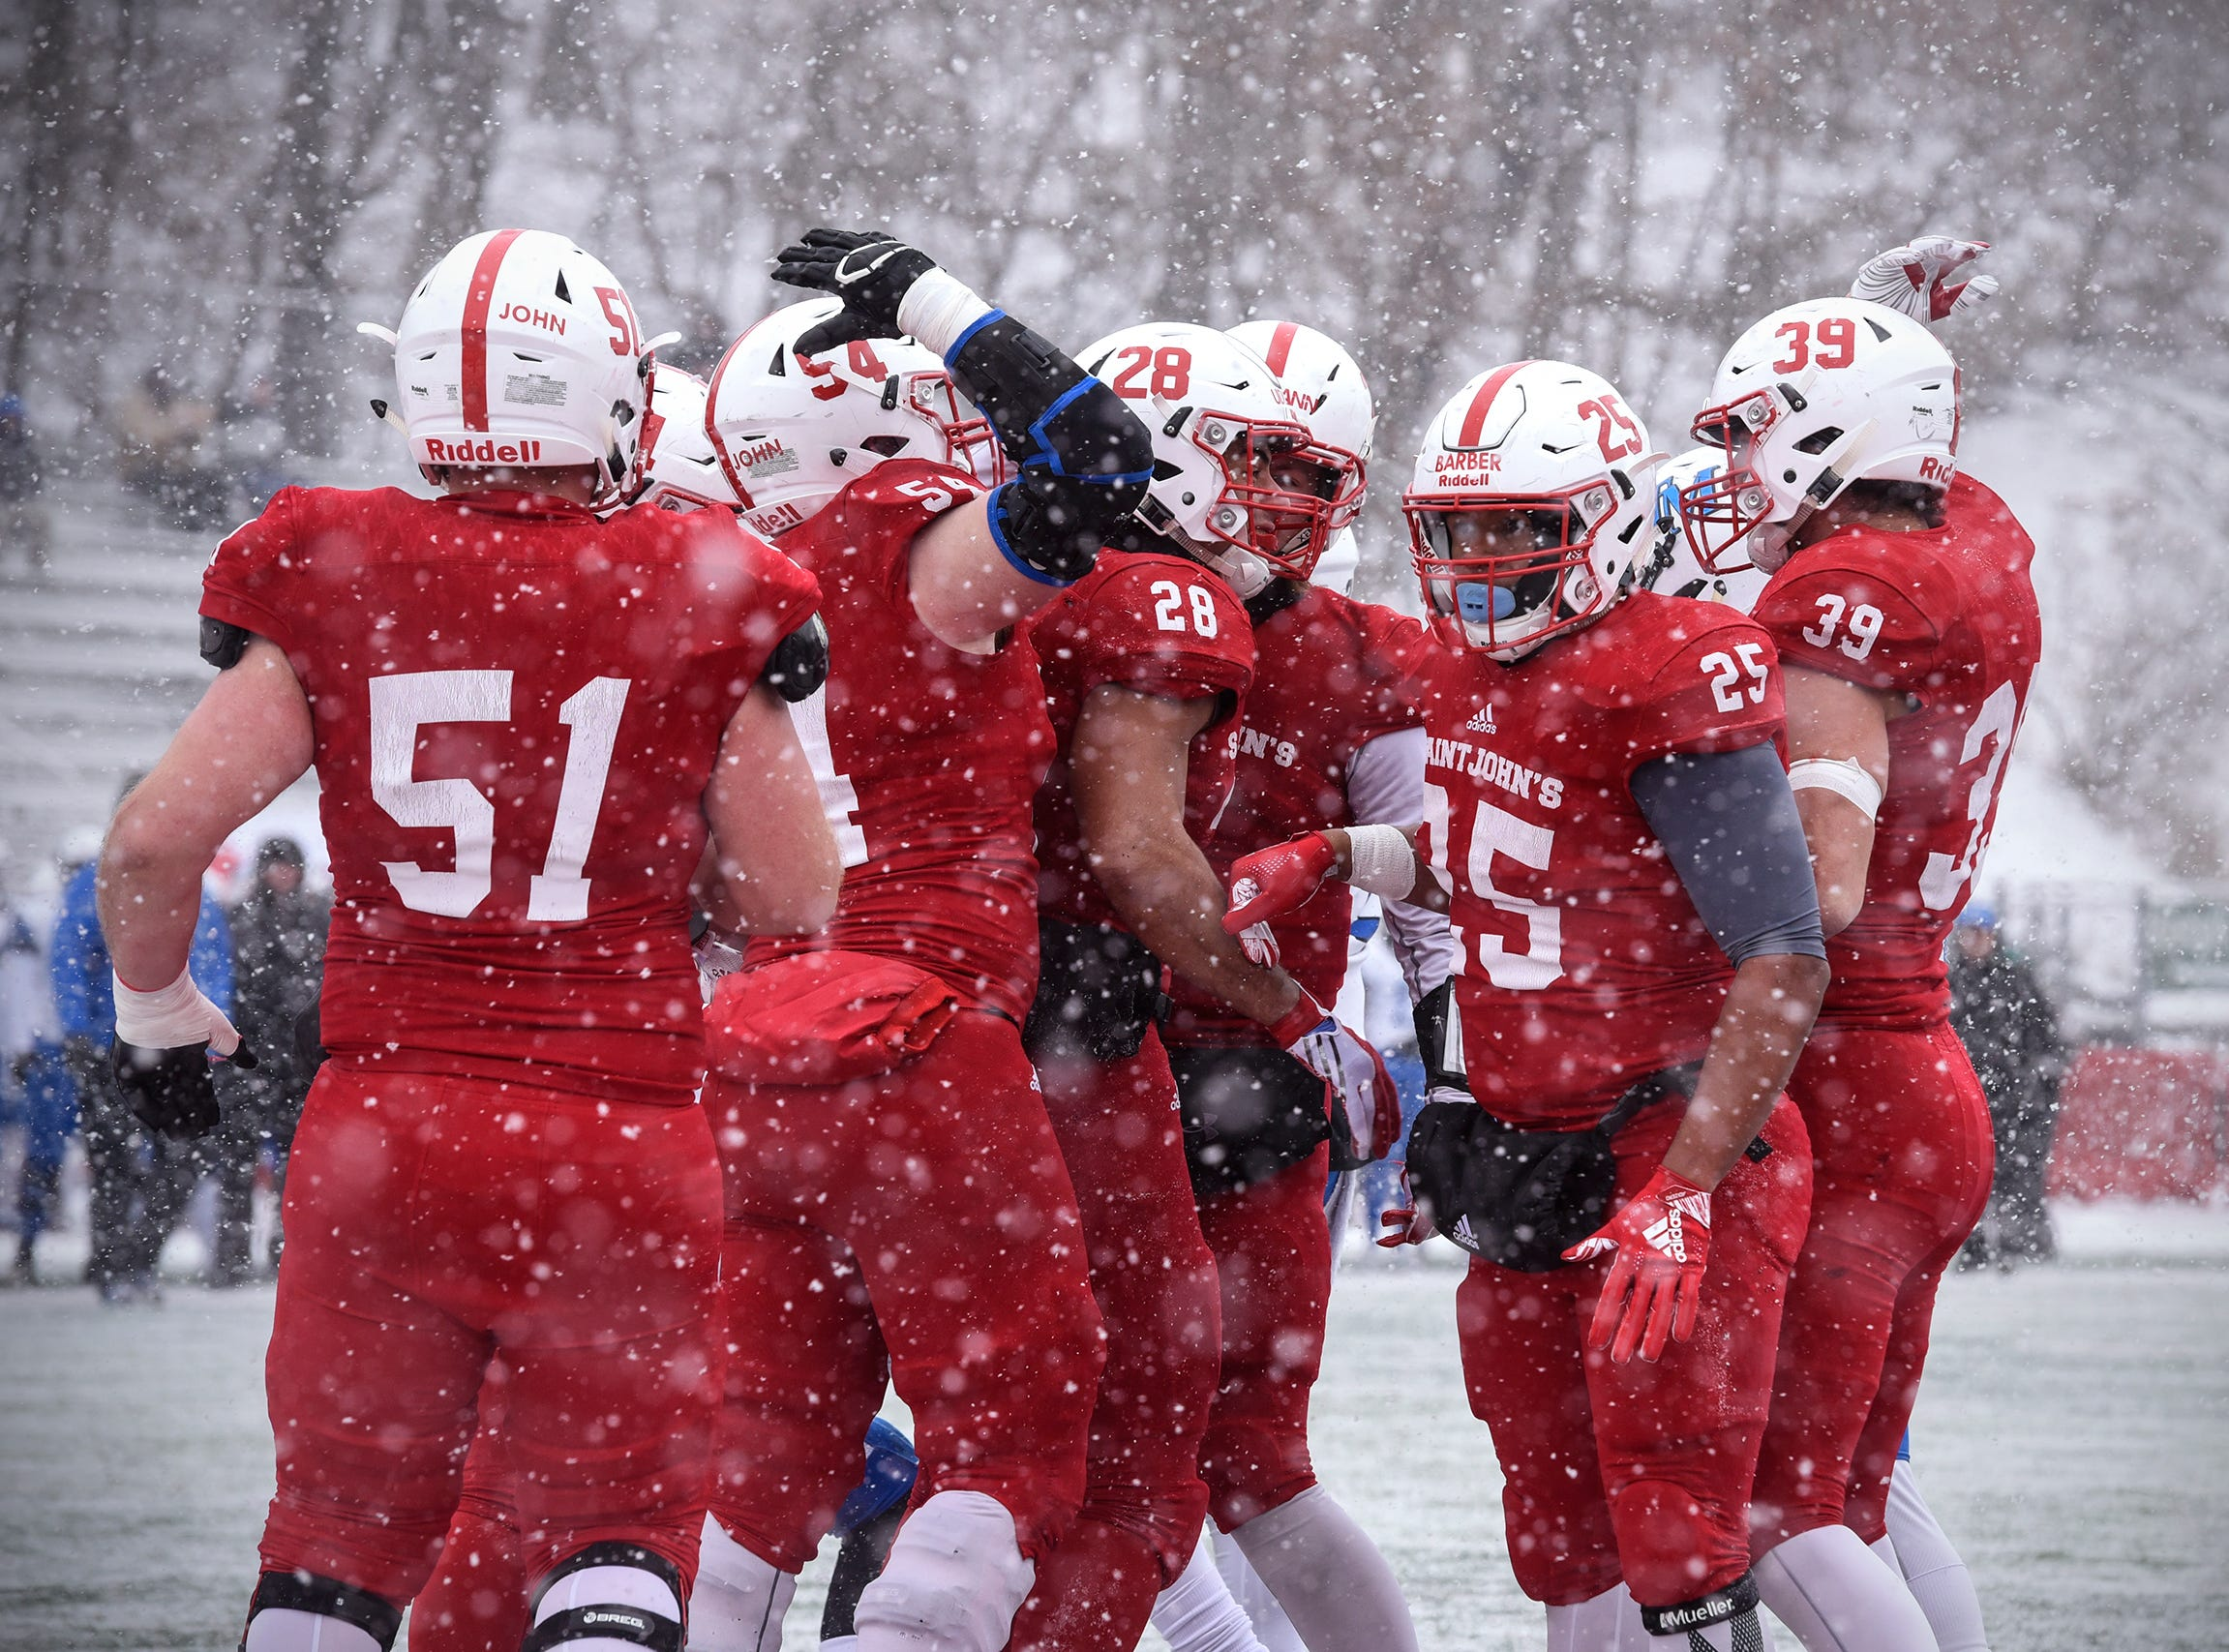 St. John's players celebrate a touchdown by Kenneth Udoibok during the first half of the Saturday, Nov. 10, game against Thomas More University at Clemens Stadium in Collegeville.